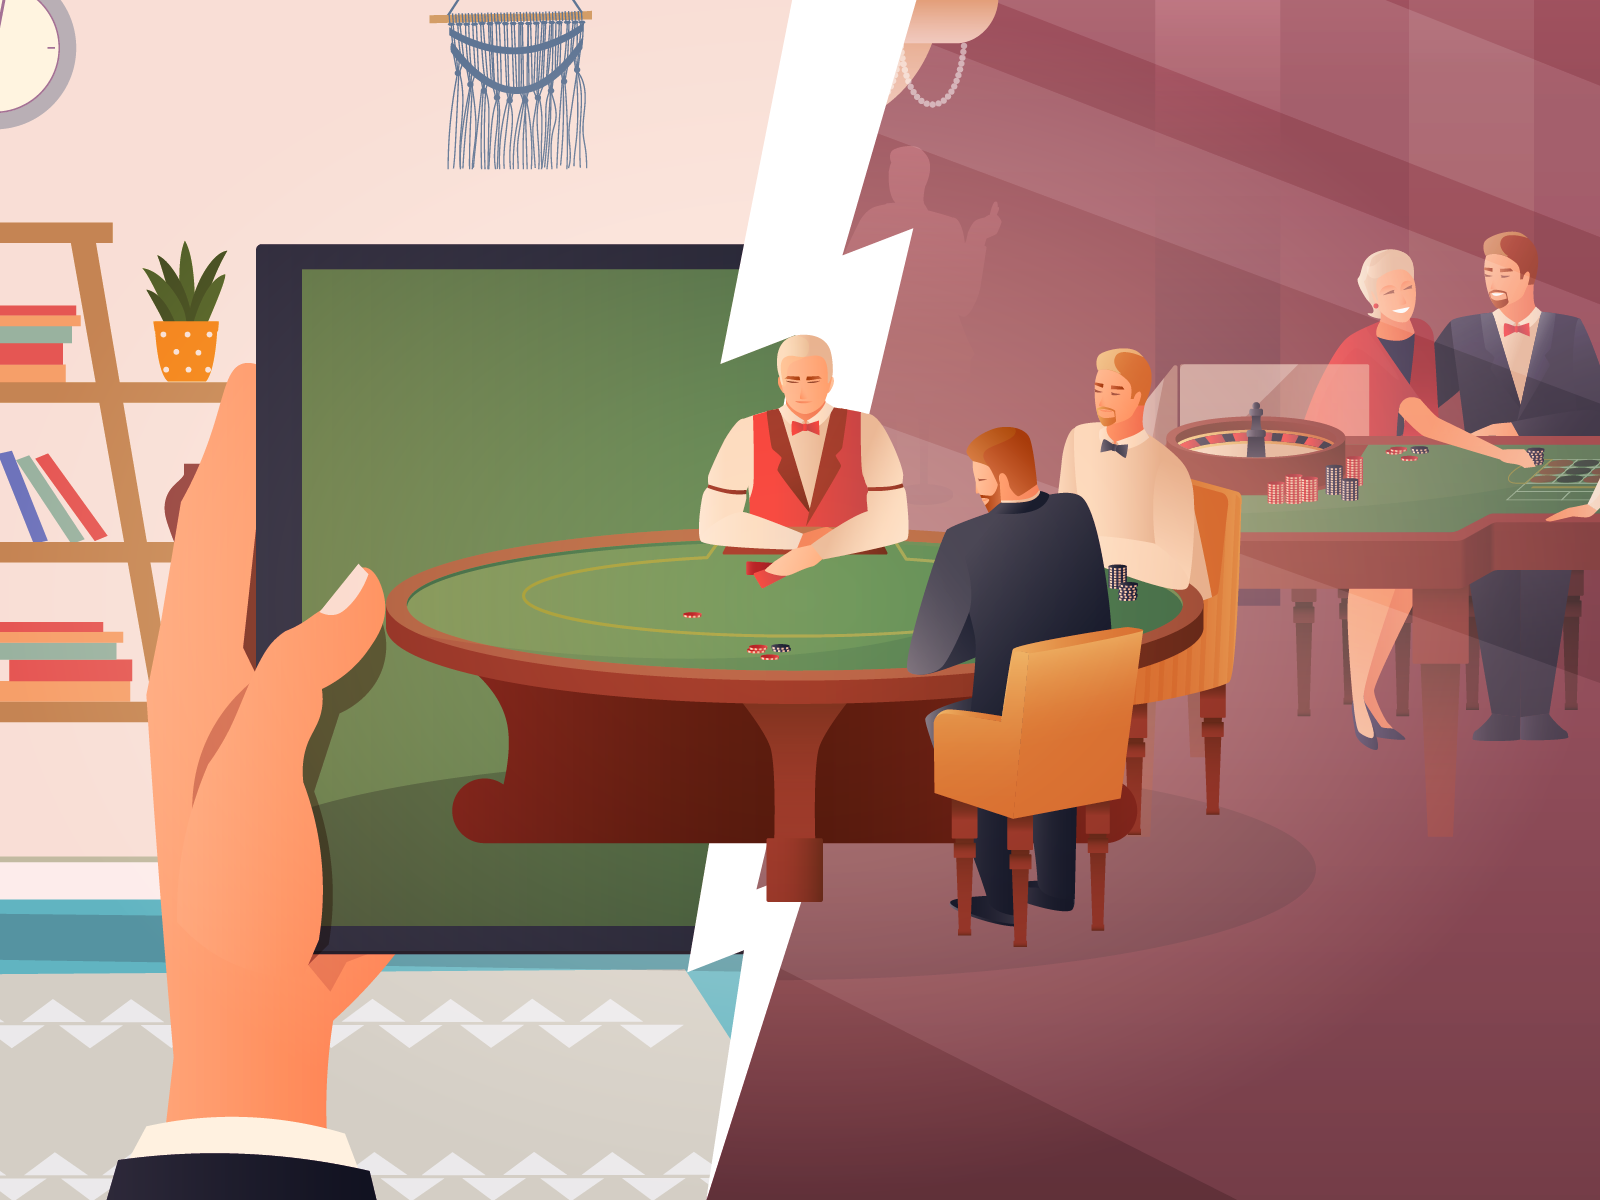 Online Casinos vs. Land-Based Casinos: Which is Better?